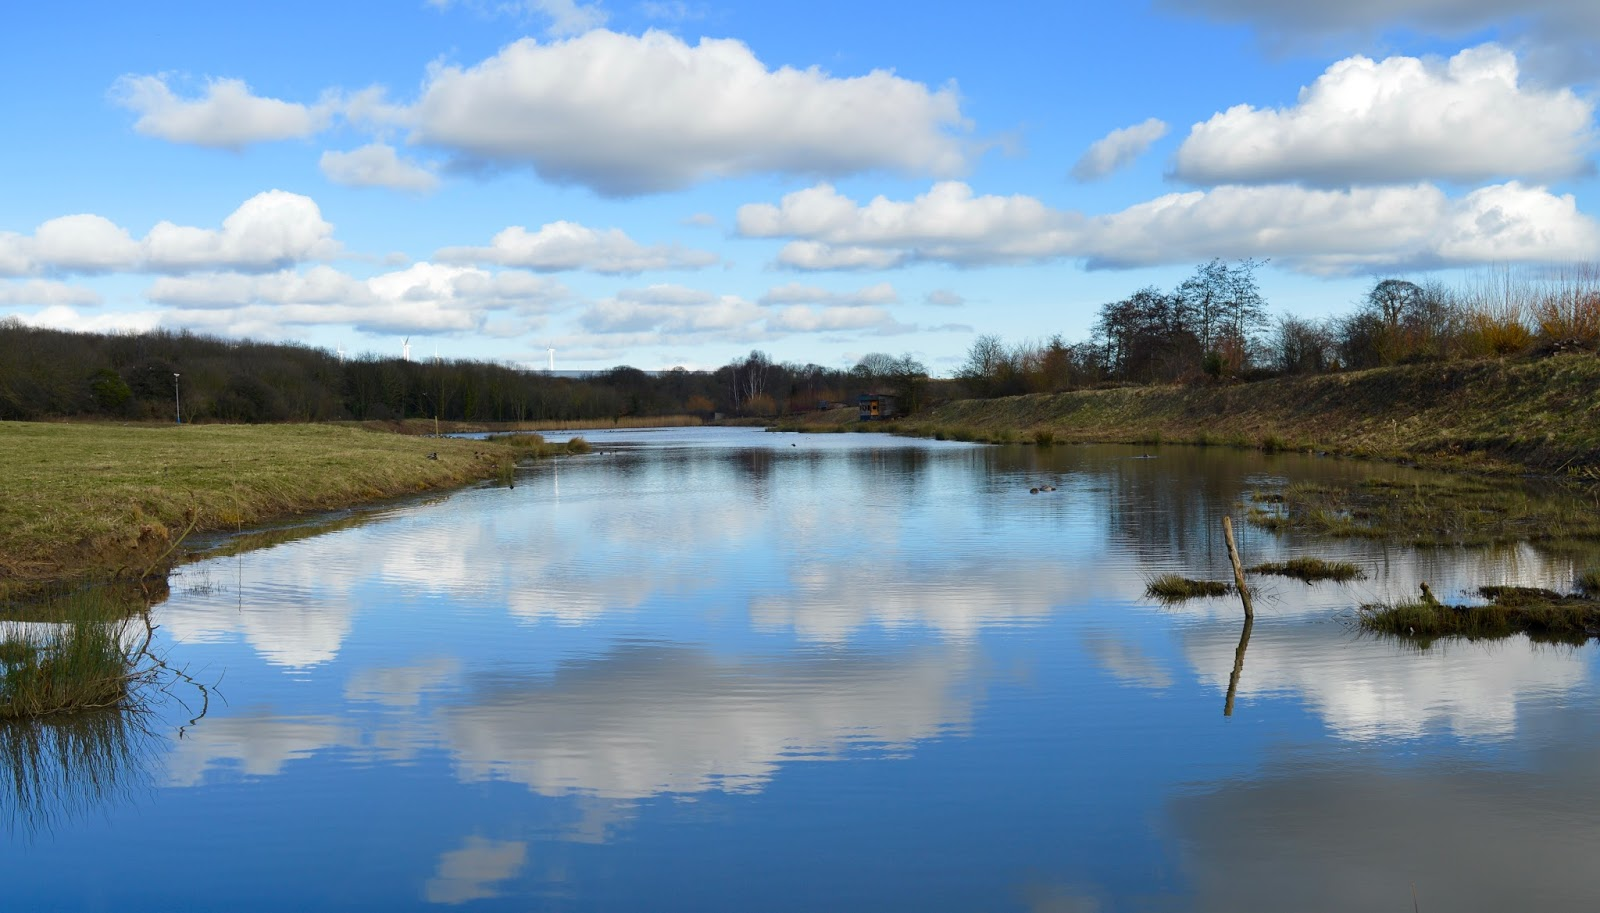 WWT Washington Wetland Centre | An Accessible North East Day Out for the Whole Family - reflection in water from bird hide